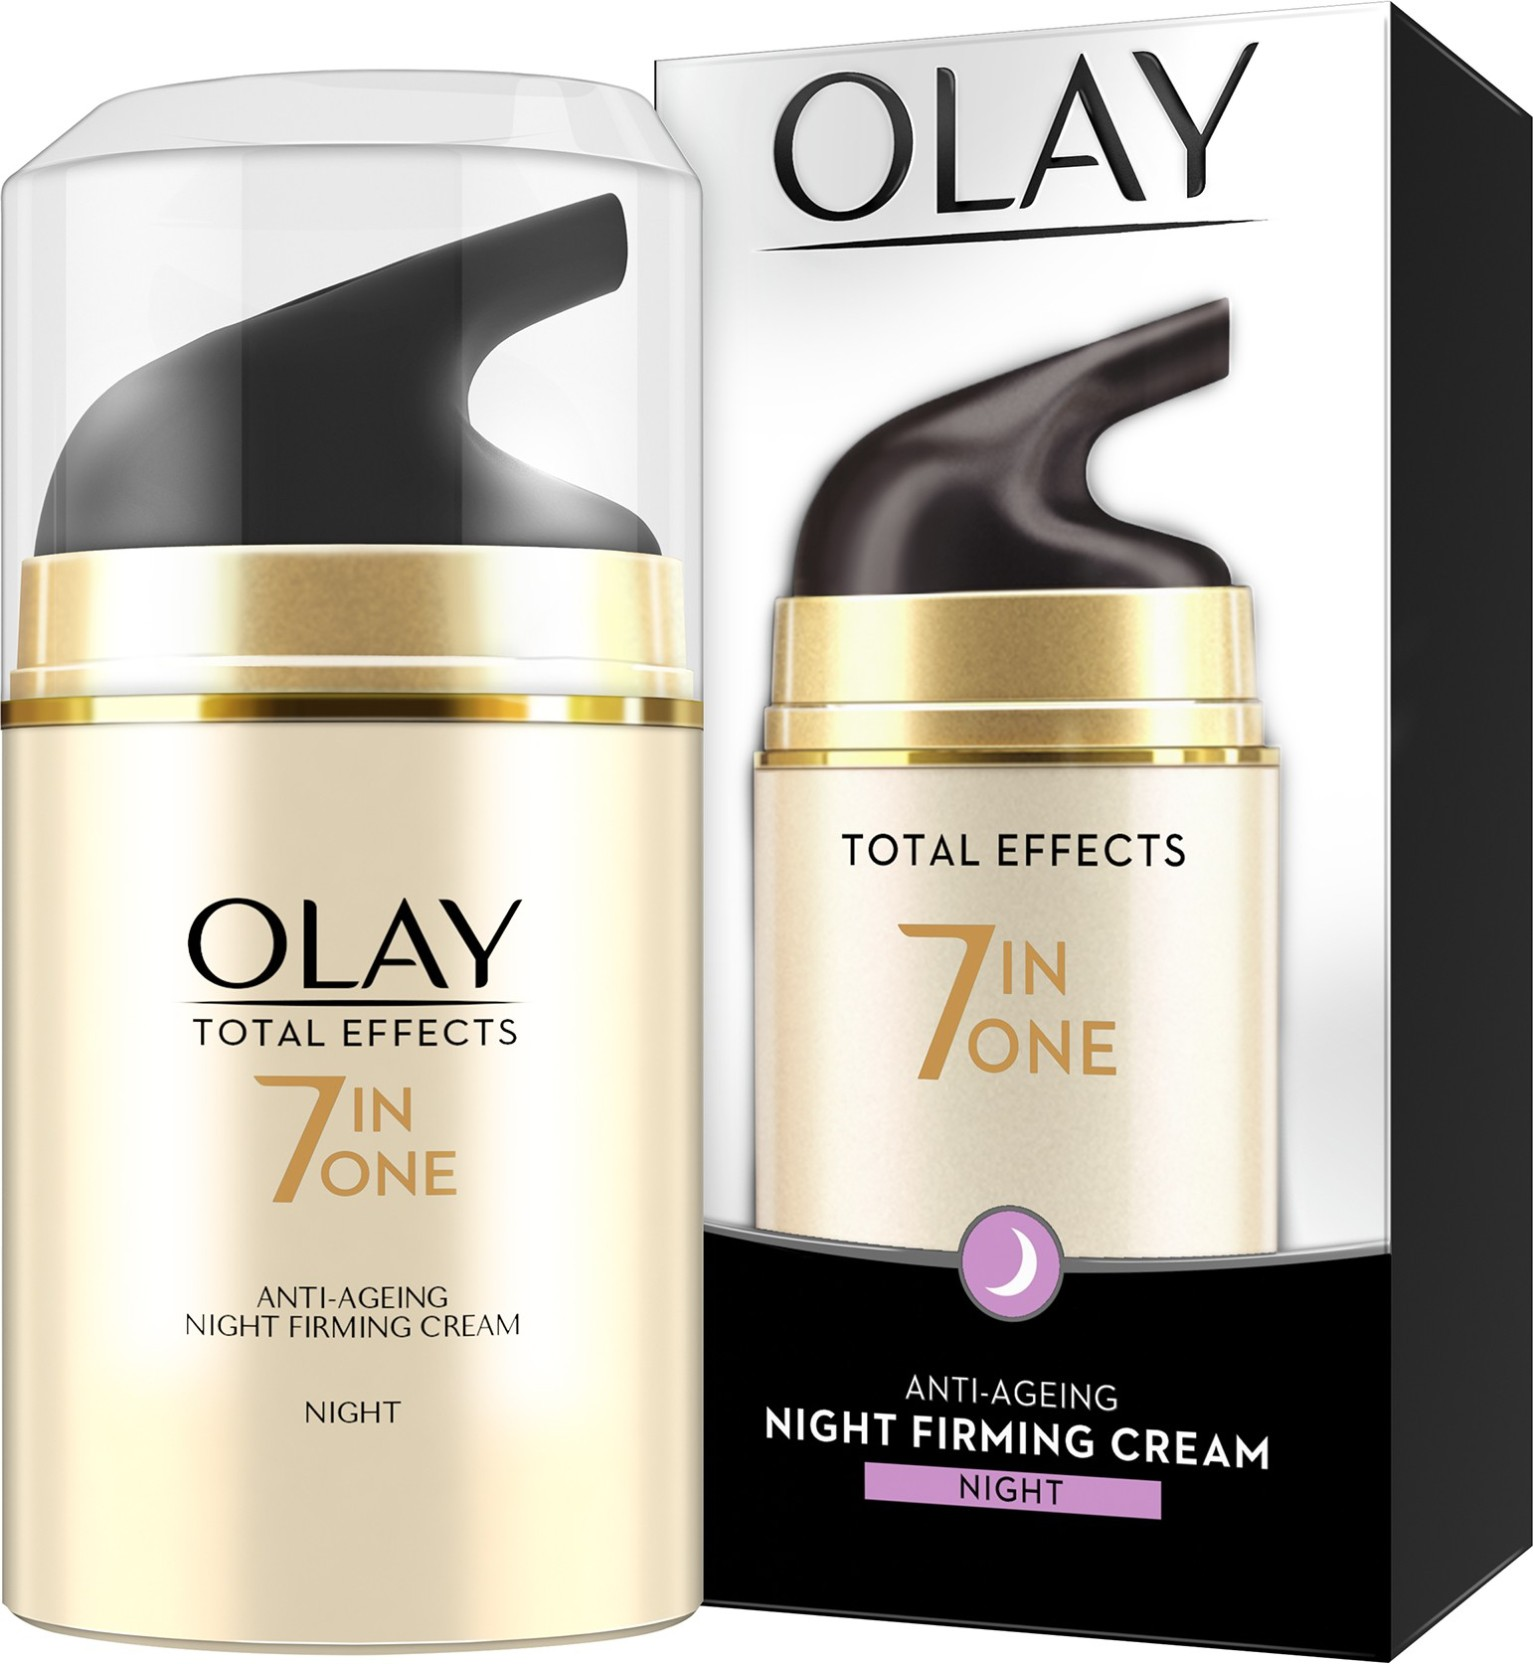 Olay Total Effects 7 In One Anti Ageing Night Firming Cream Price Ponds Age Miracle Day Jar 50 G On Offer